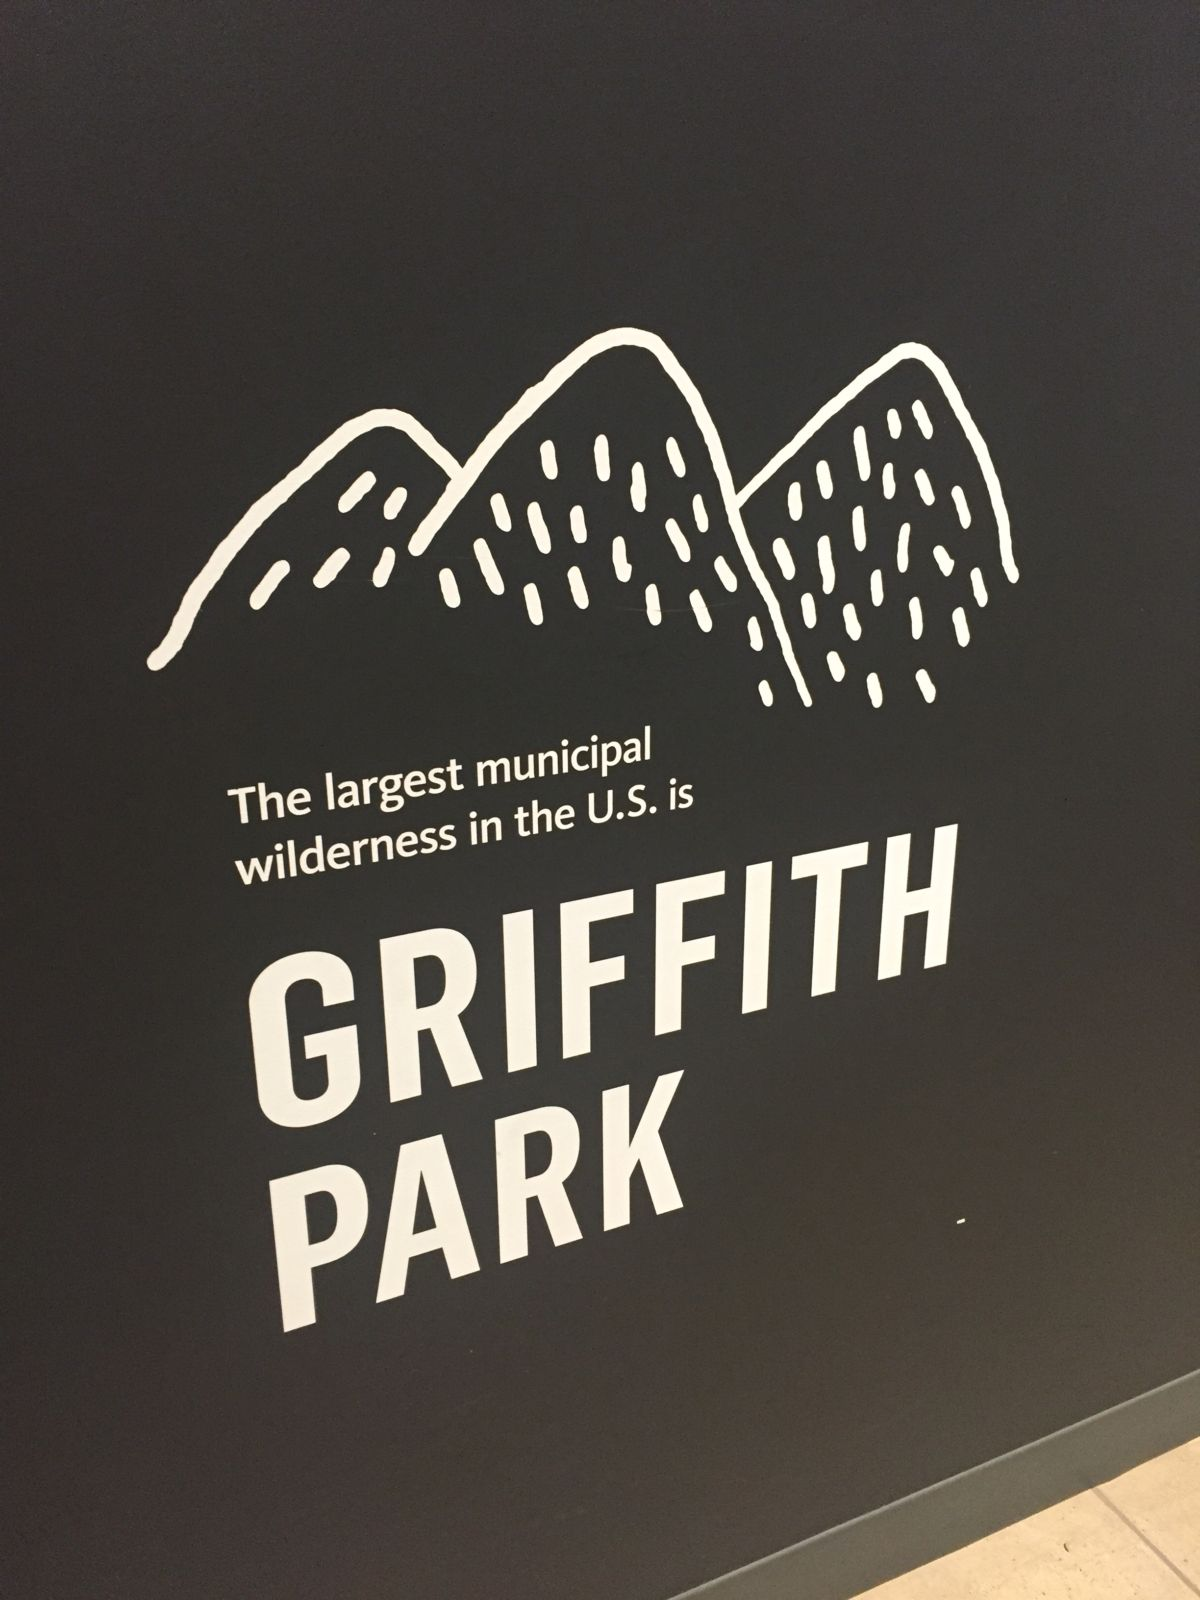 Griffith Park at the Natural History Museum